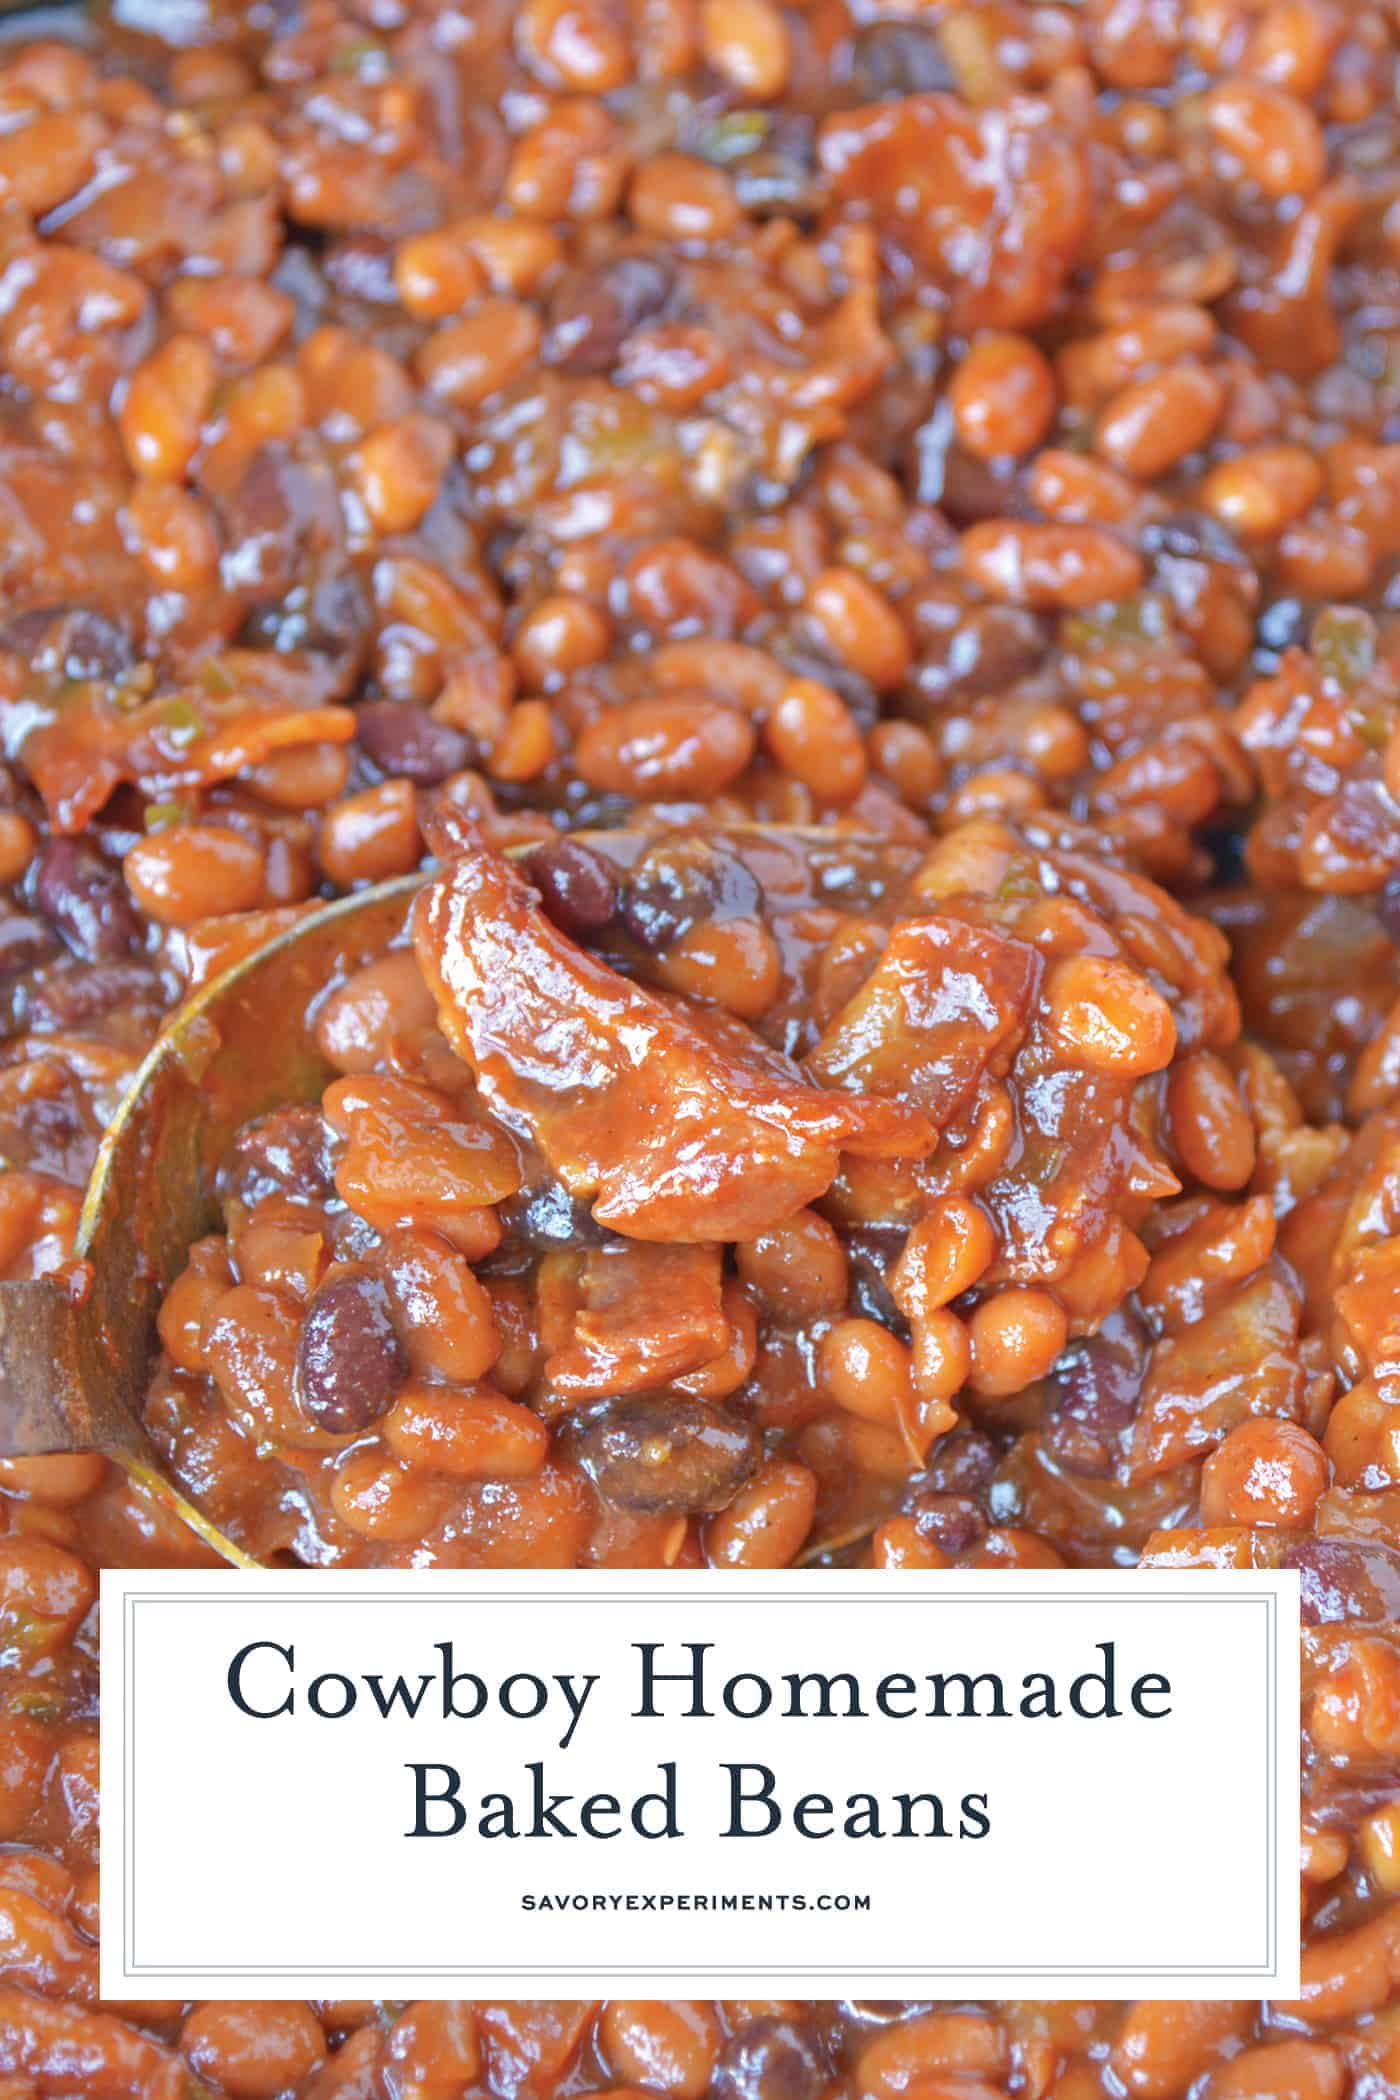 Cowboy Homemade Baked Beans are smoky, spicy and sweet. The perfect side dish recipe for BBQ, potlucks and parties. An easy baked bean recipe with loads of flavor!#homemadebakedbeans #bakedbeans www.savoryexperiments.com